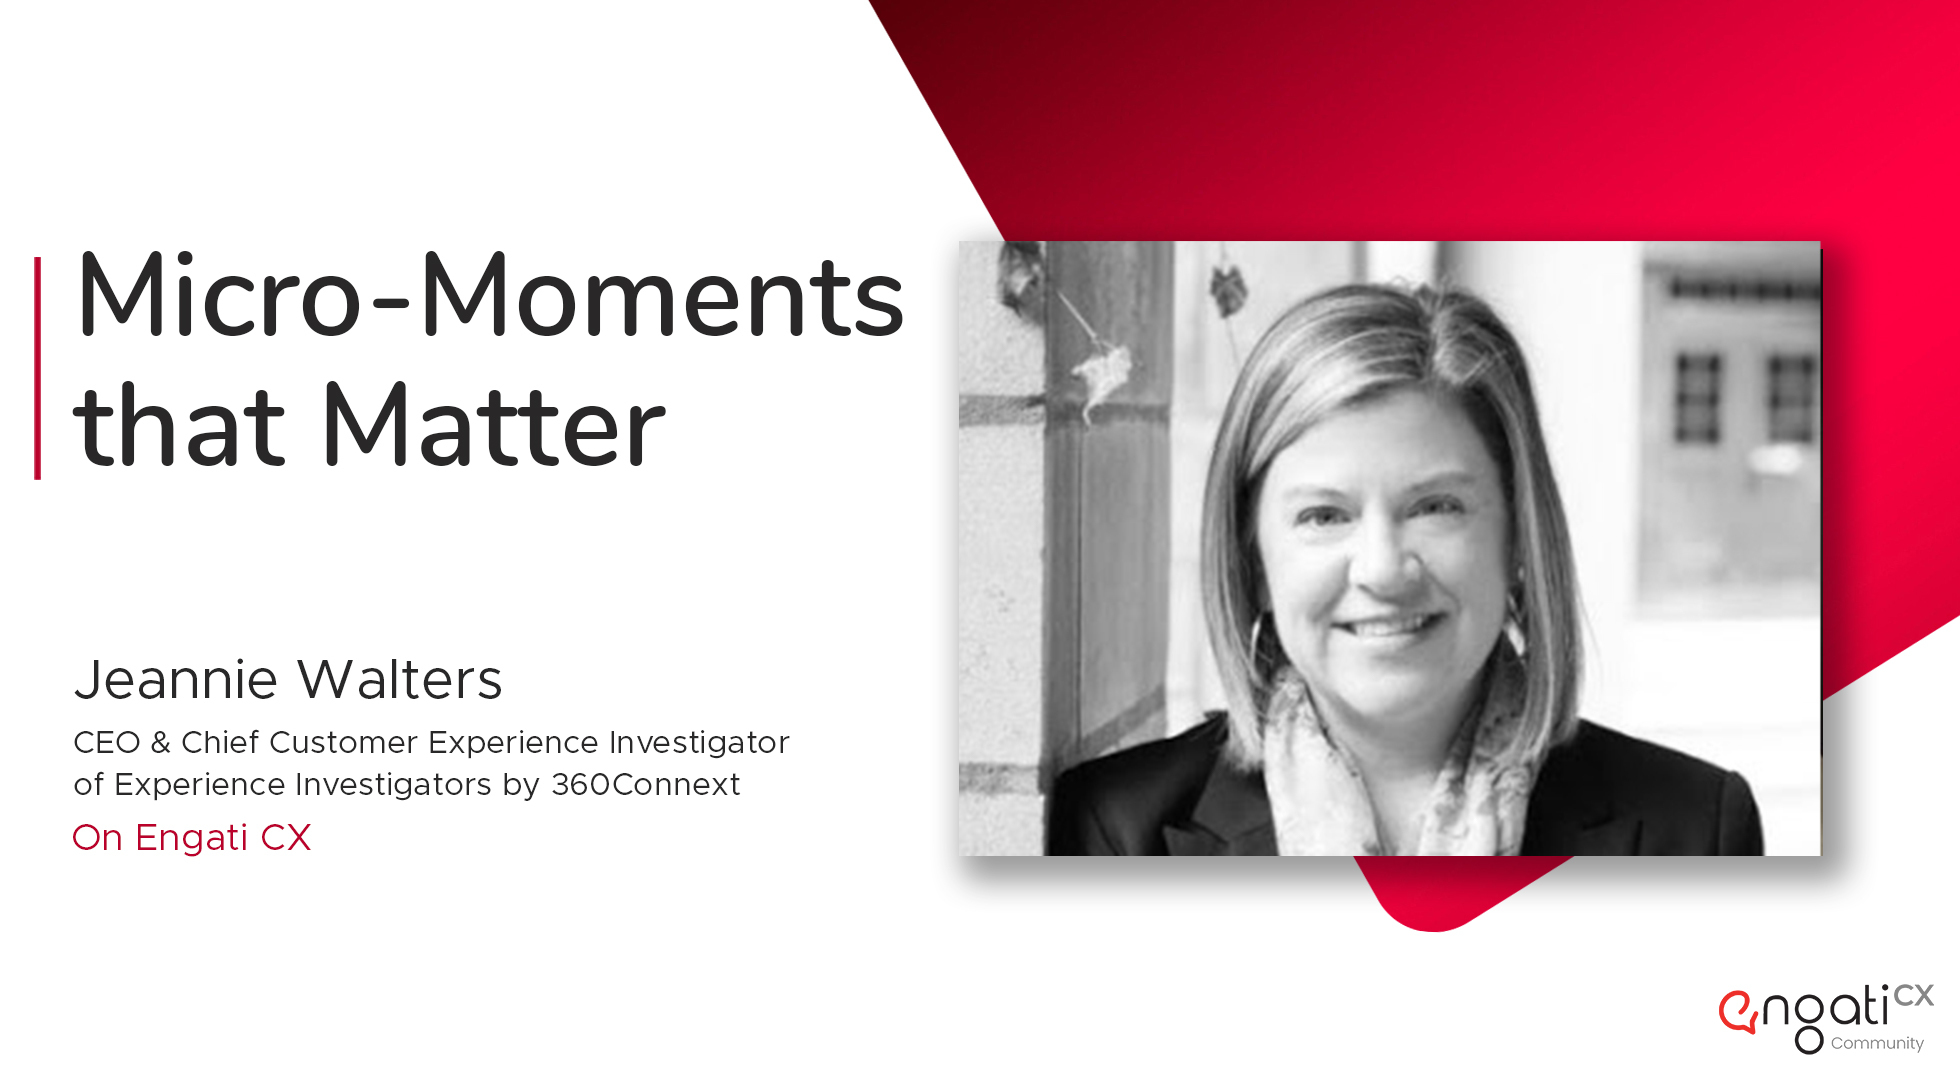 Micro-moments that matter | Jeannie Walters | Engati CX